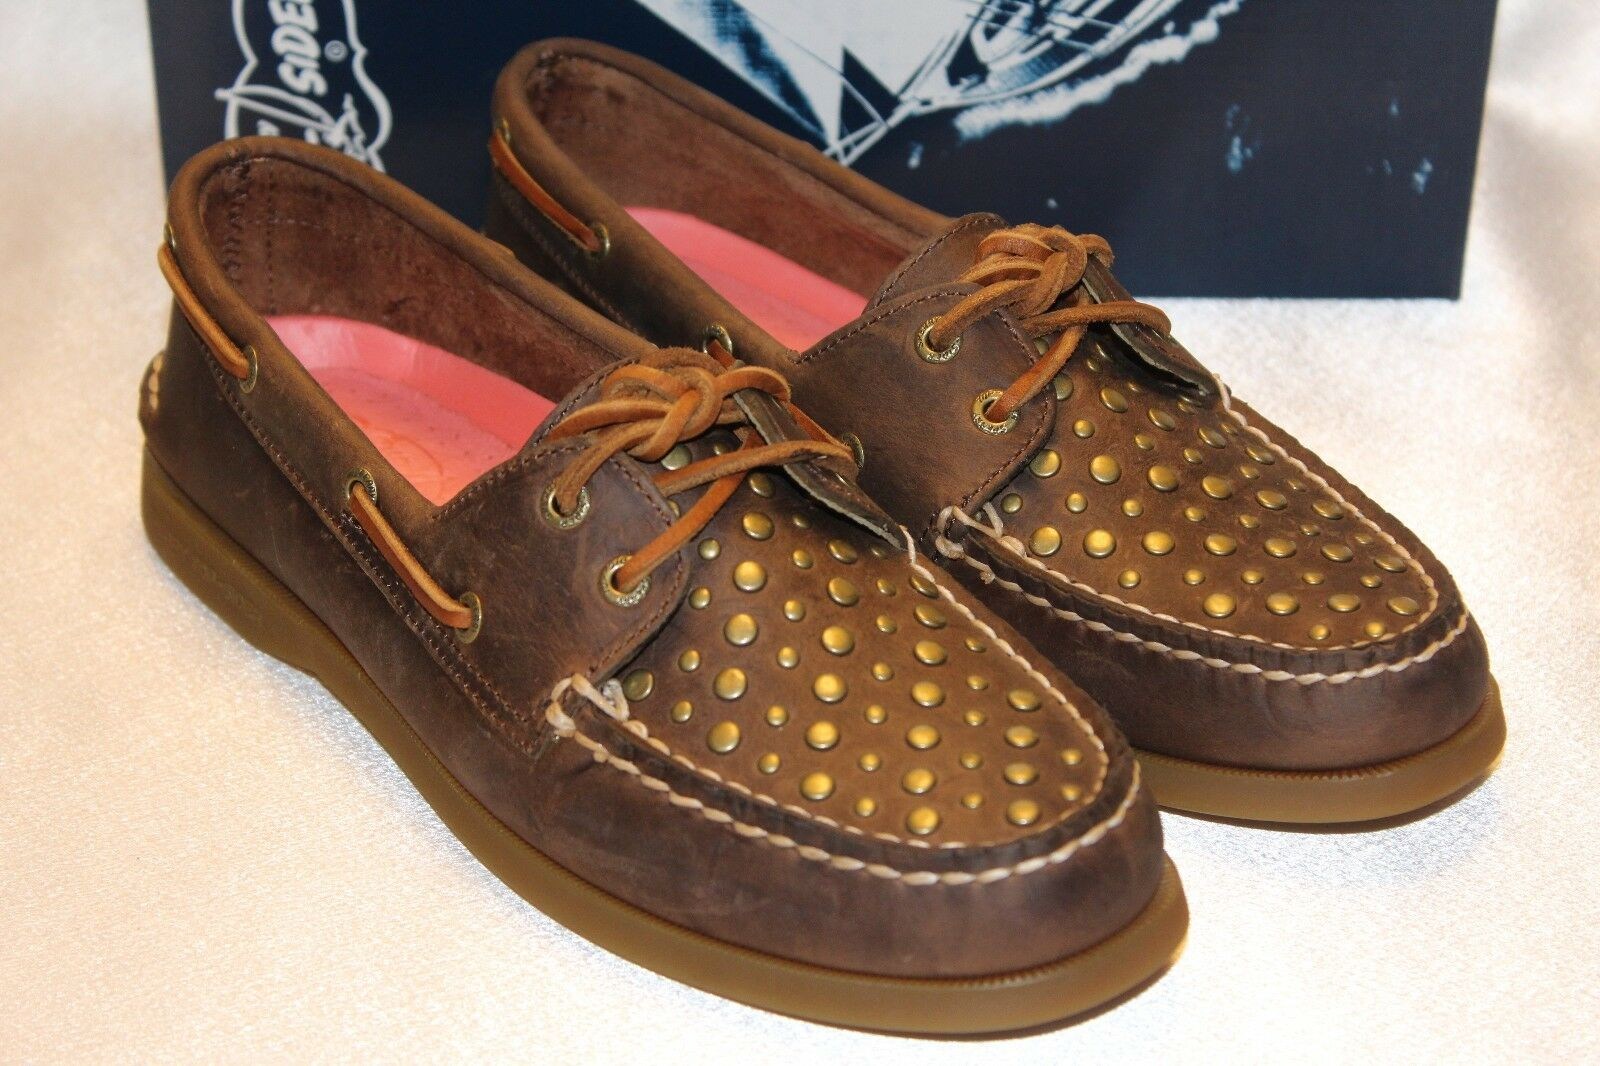 NEW  NIB  Sperry Top Top Top Sider A O 2 Eye Brown Leather Stud Boat shoes Sz 5 8 12  90 036478